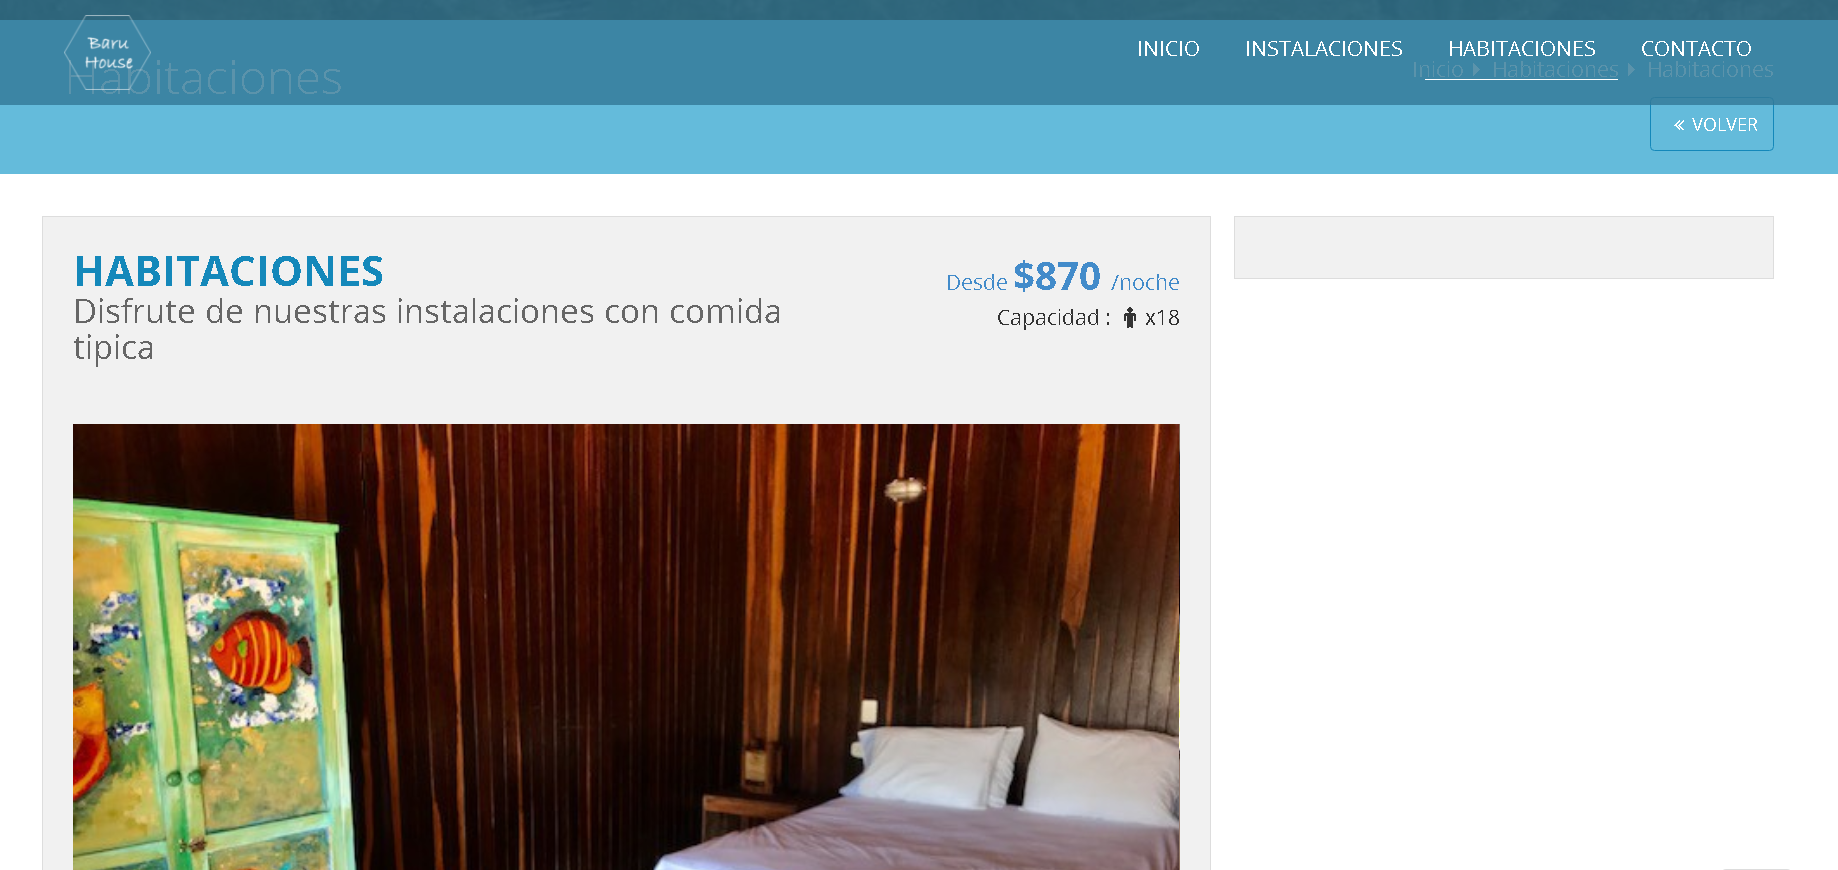 Hostales, hoteles, Camping